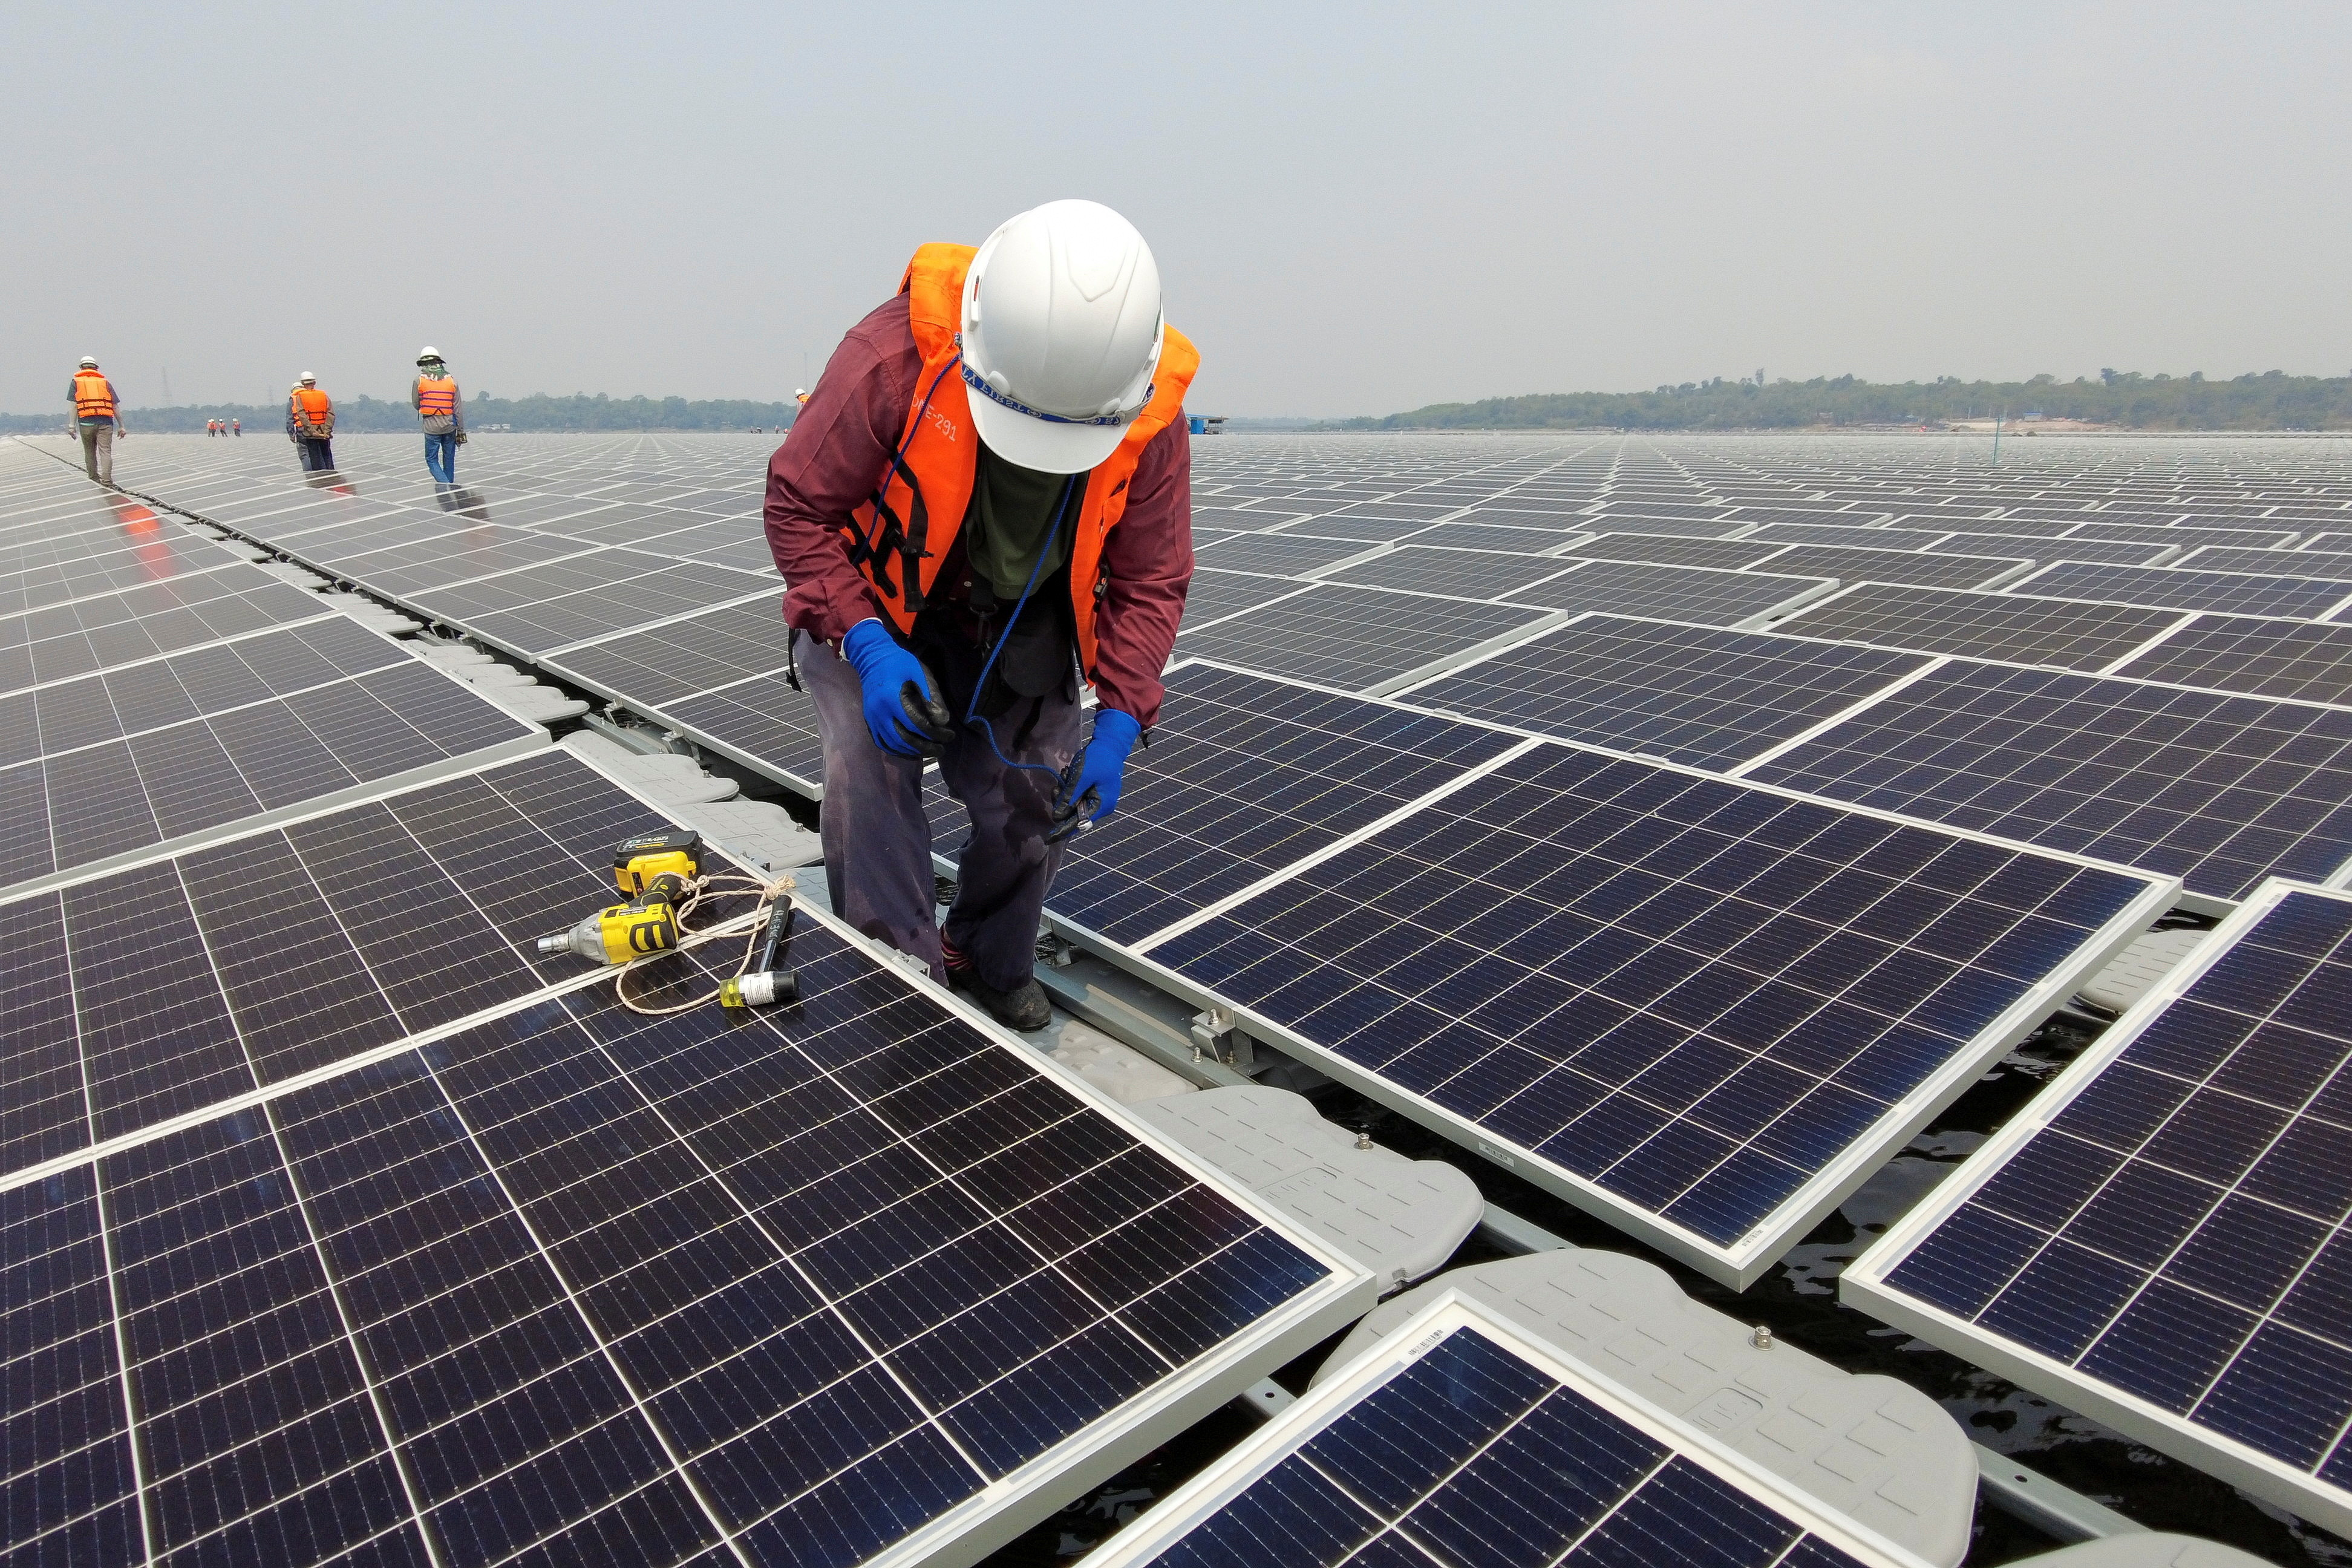 A worker stands between solar cell panels over the water surface of Sirindhorn Dam in Ubon Ratchathani, Thailand